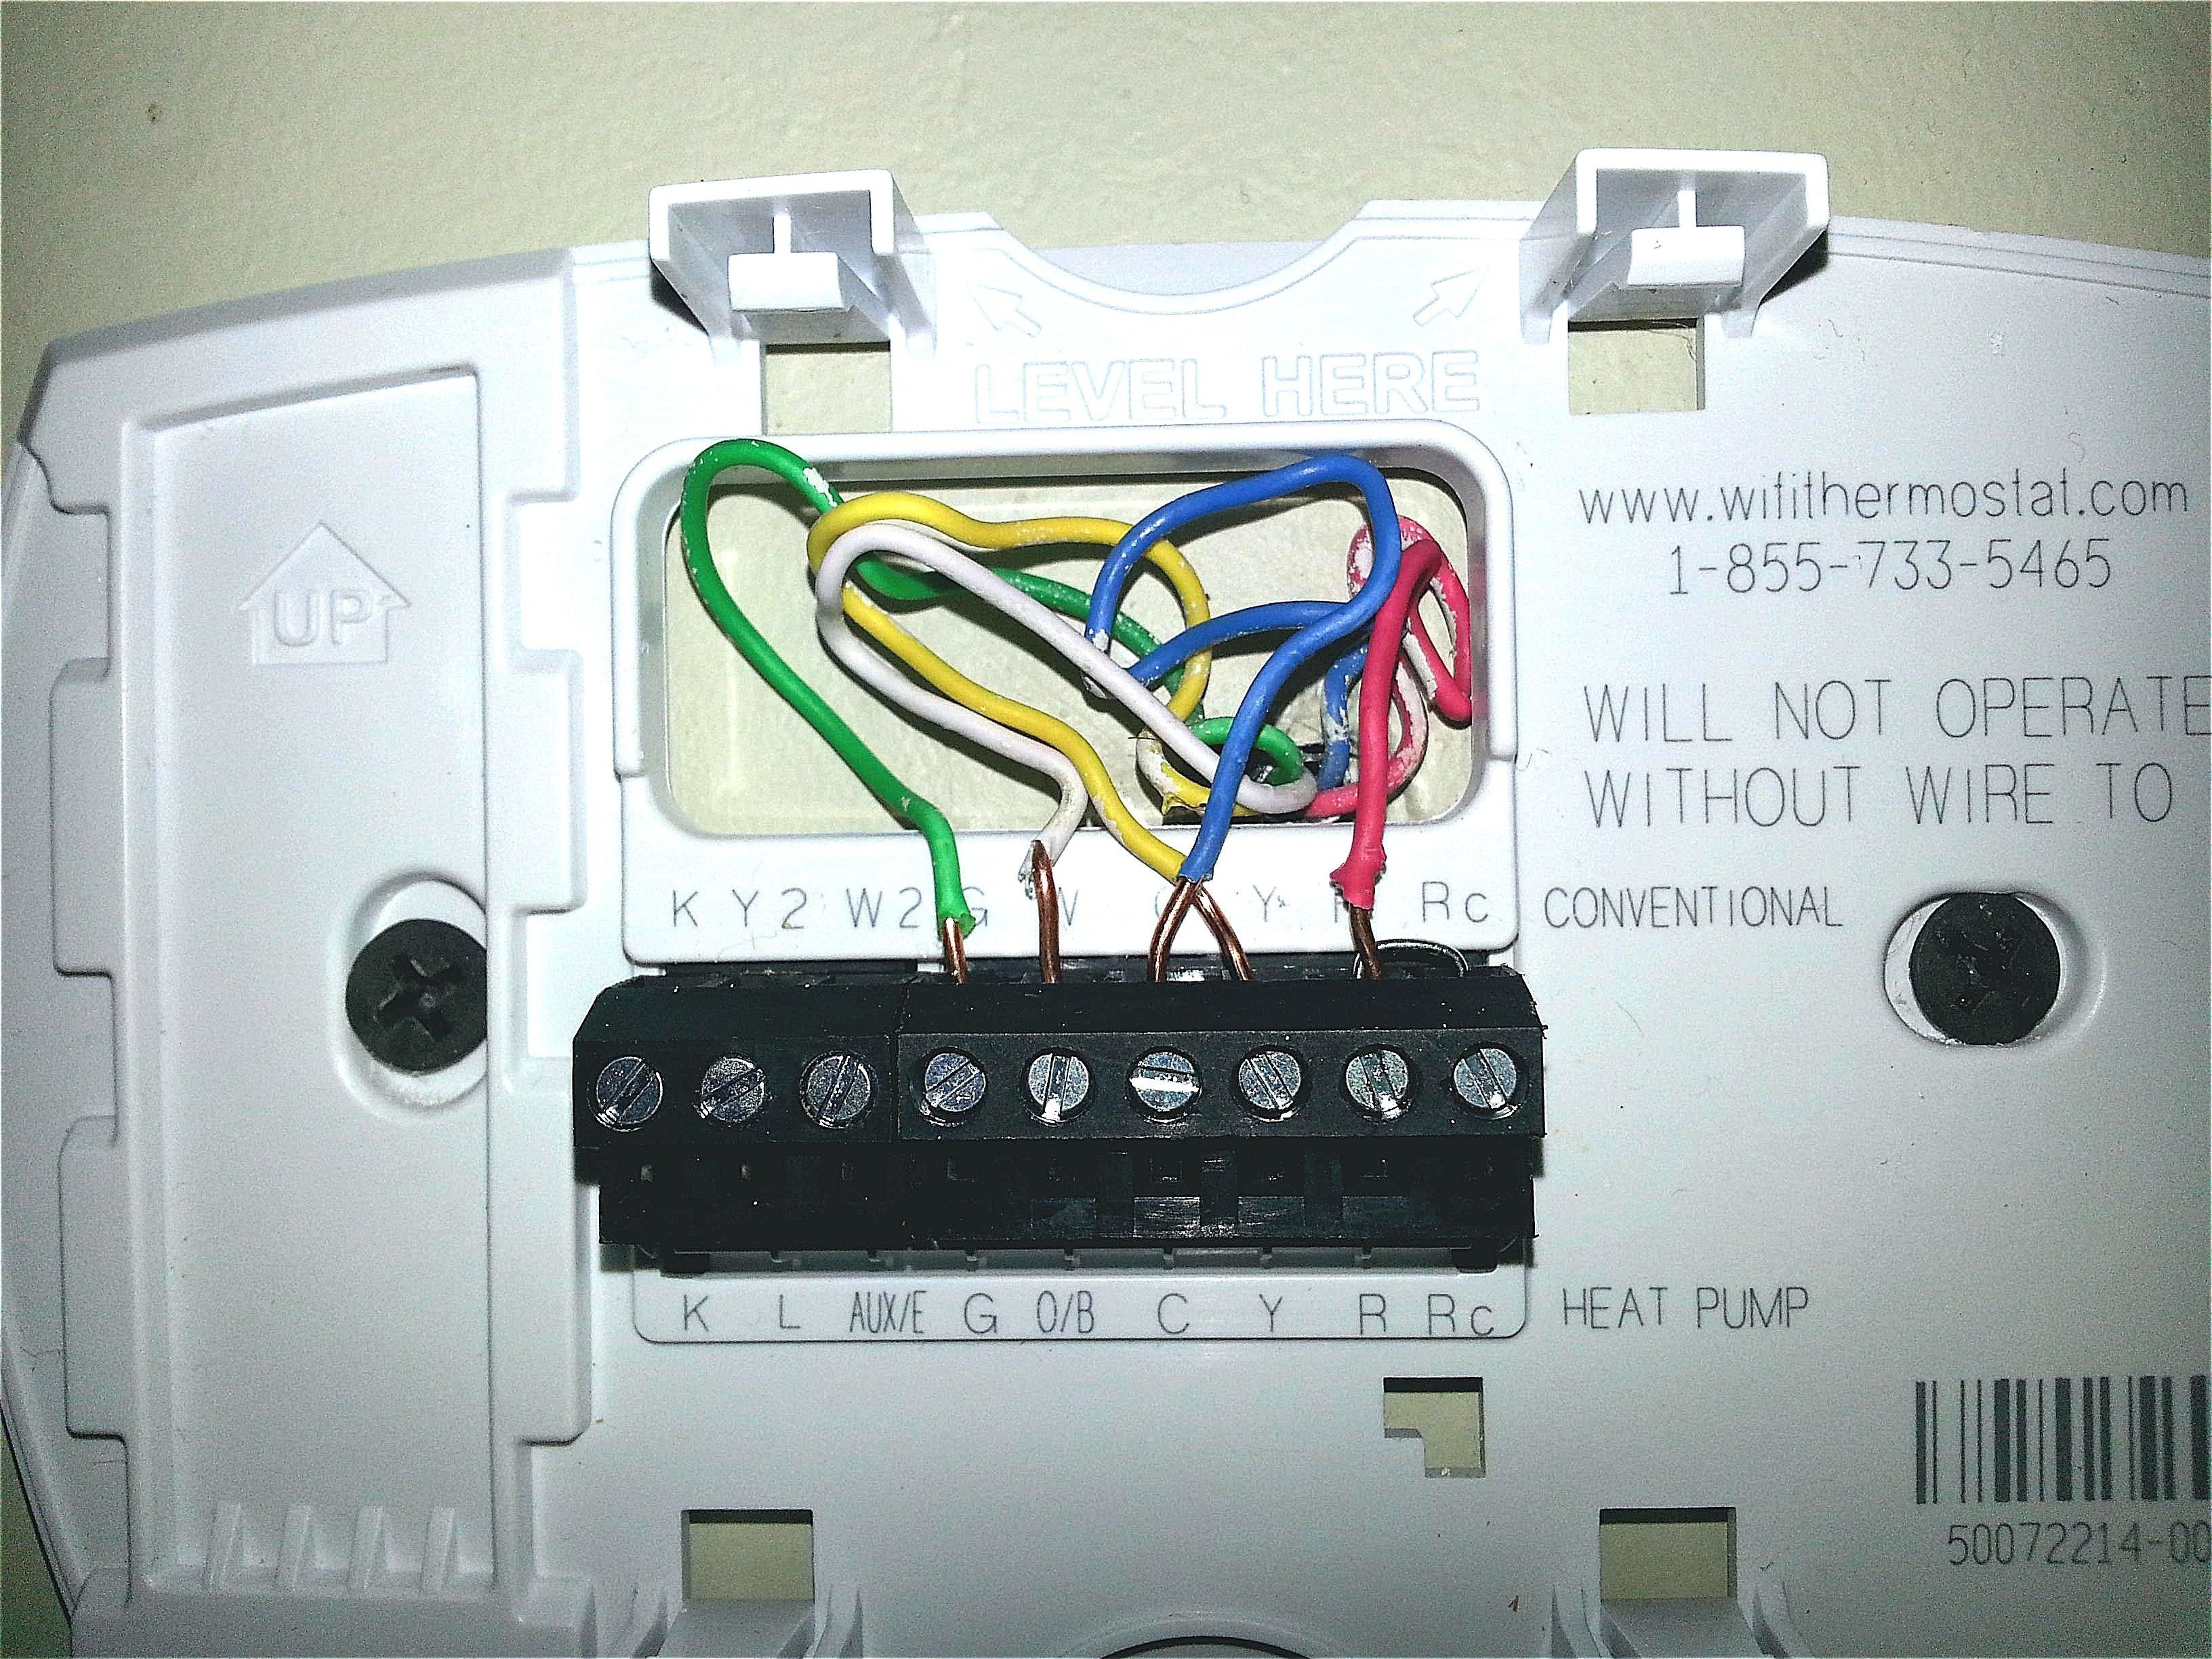 New Honeywell thermostat T87 Wiring Diagram #diagram ... on honeywell add a wire, honeywell thermostats baseboard, american standard wiring, honeywell thermostats focuspro 5000, honeywell prestige iaq redesigned, honeywell th3000 installation guide, honeywell heat thermostats instalation, honeywell log, honeywell rth2510, rth230b wiring, honeywell ct87n4450, honeywell blower relay, honeywell pro 5000 owner's manual, trane air conditioners wiring, hoover vacuum wiring, honeywell wi-fi focuspro 6000, zone valve wiring, rth2310 wiring, th4110d1007 wiring, th5220d1003 wiring,